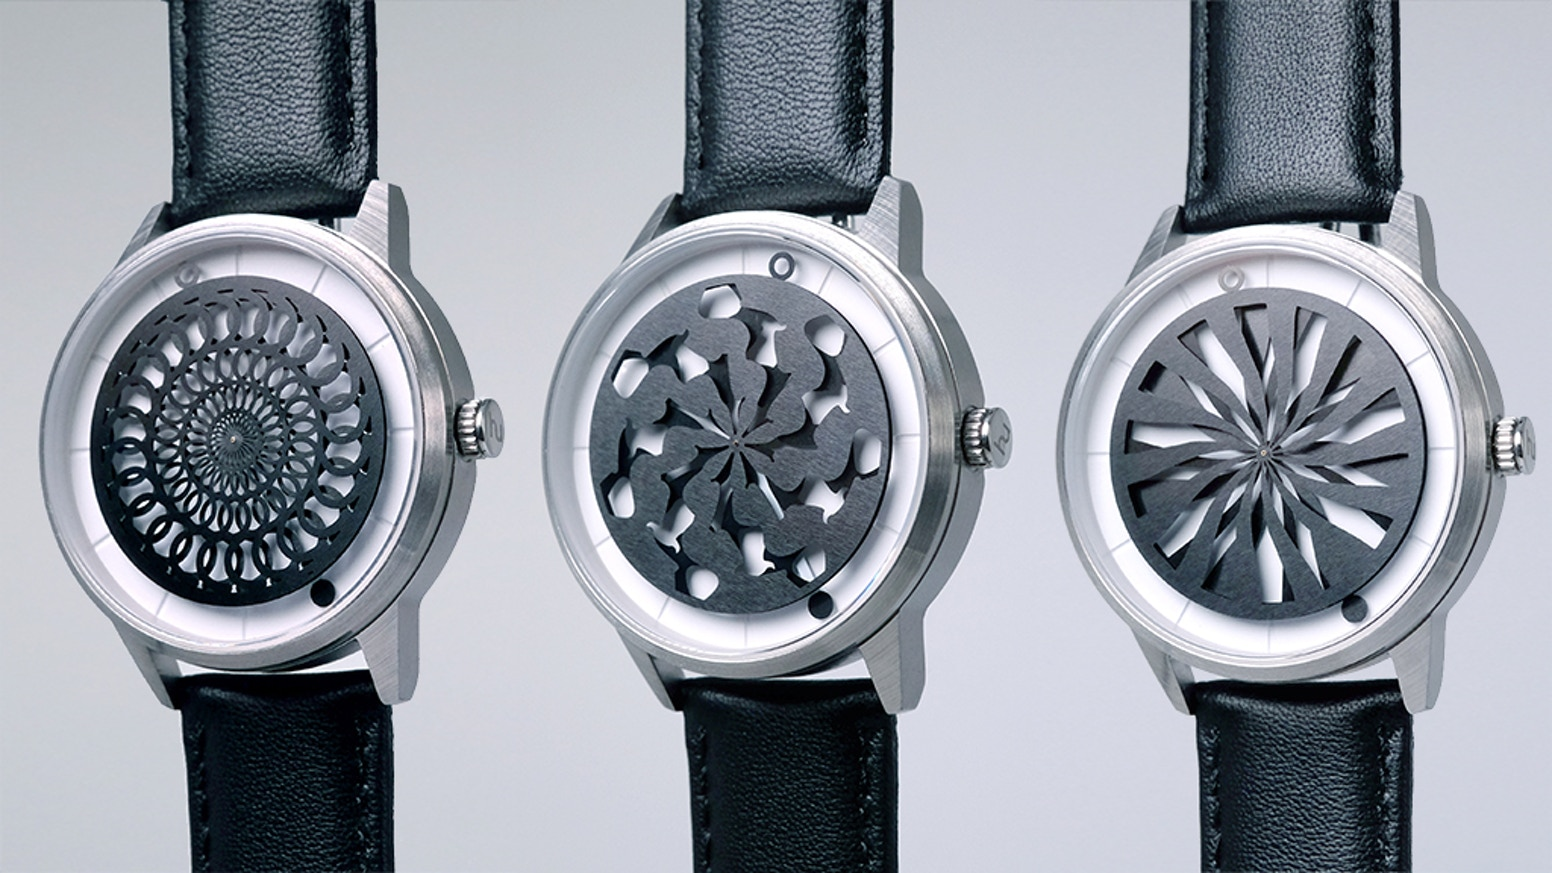 Unique Kinetic Art watches that turn time into mesmerizing art. Powered by your own movement and crafted from premium materials. Featured on Yahoo!, Monochrome and more.